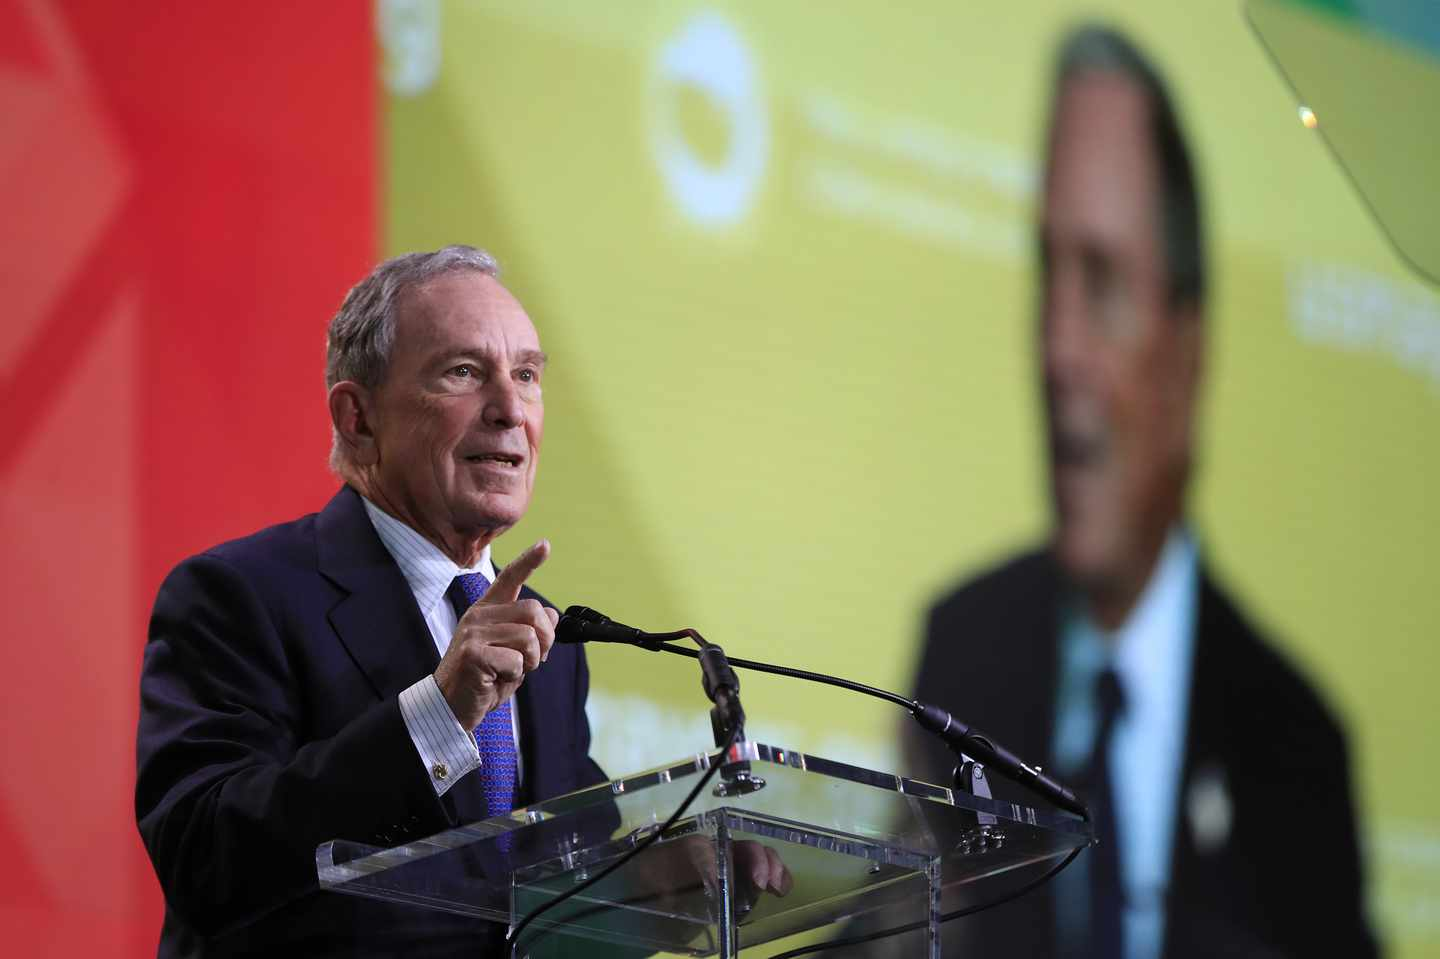 The Method to Michael Bloomberg's Madness